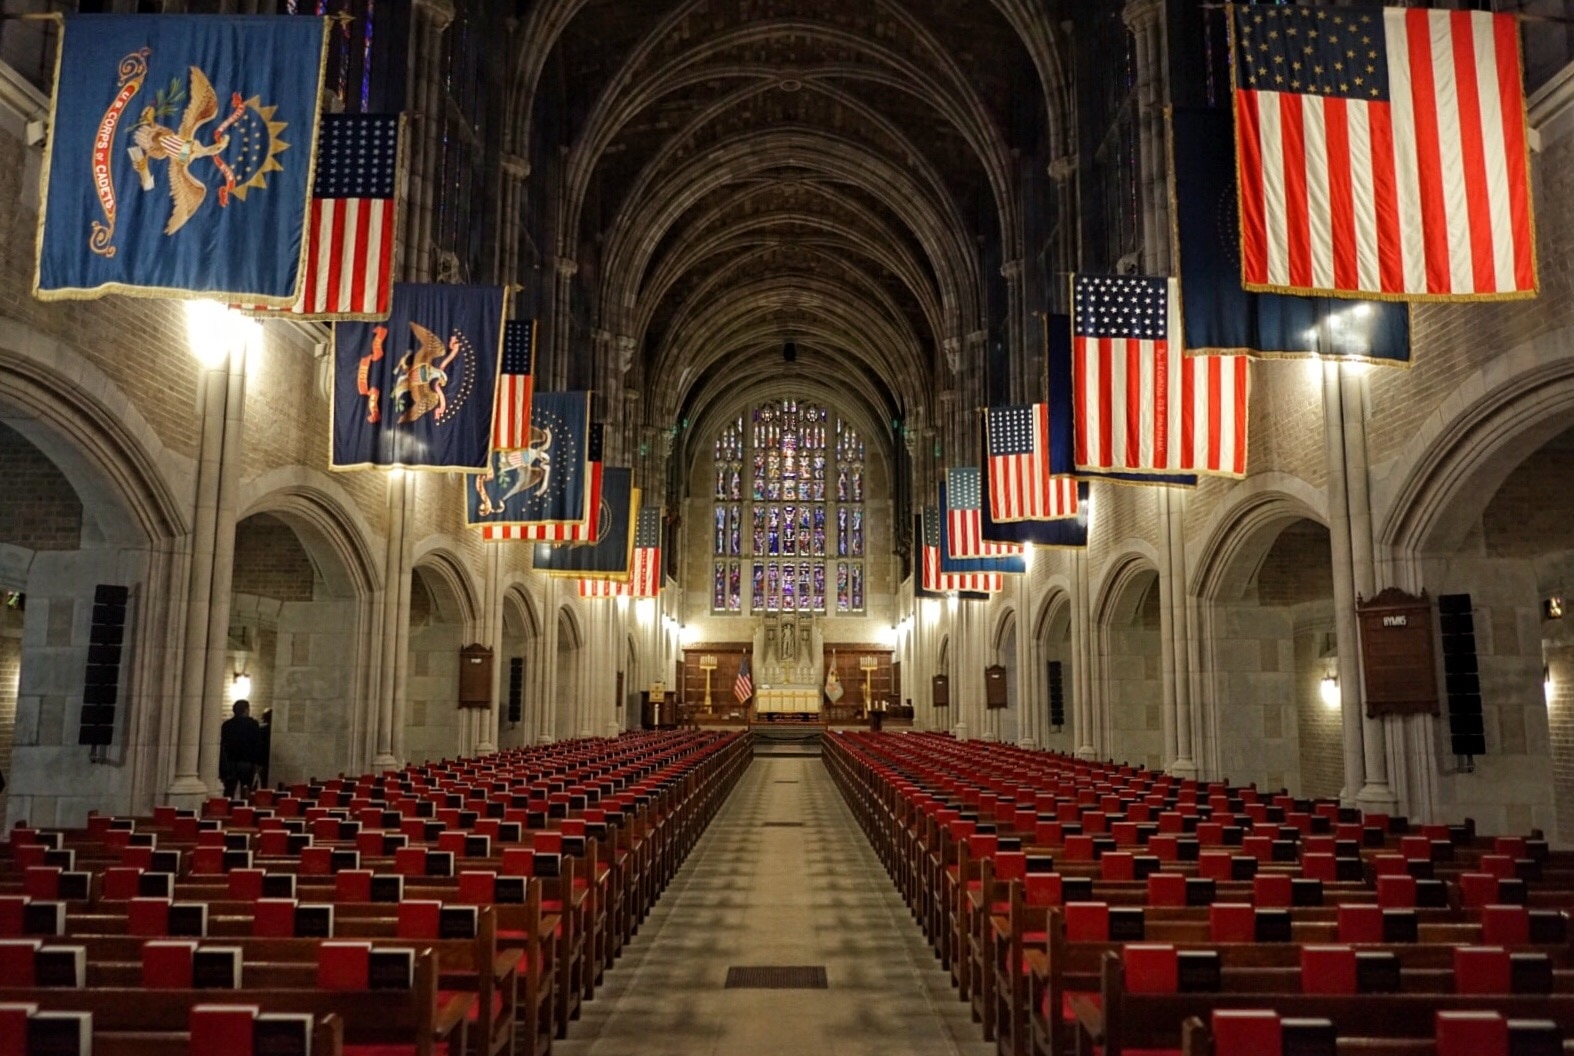 United States Military Academy, West Point, New York, United States of America